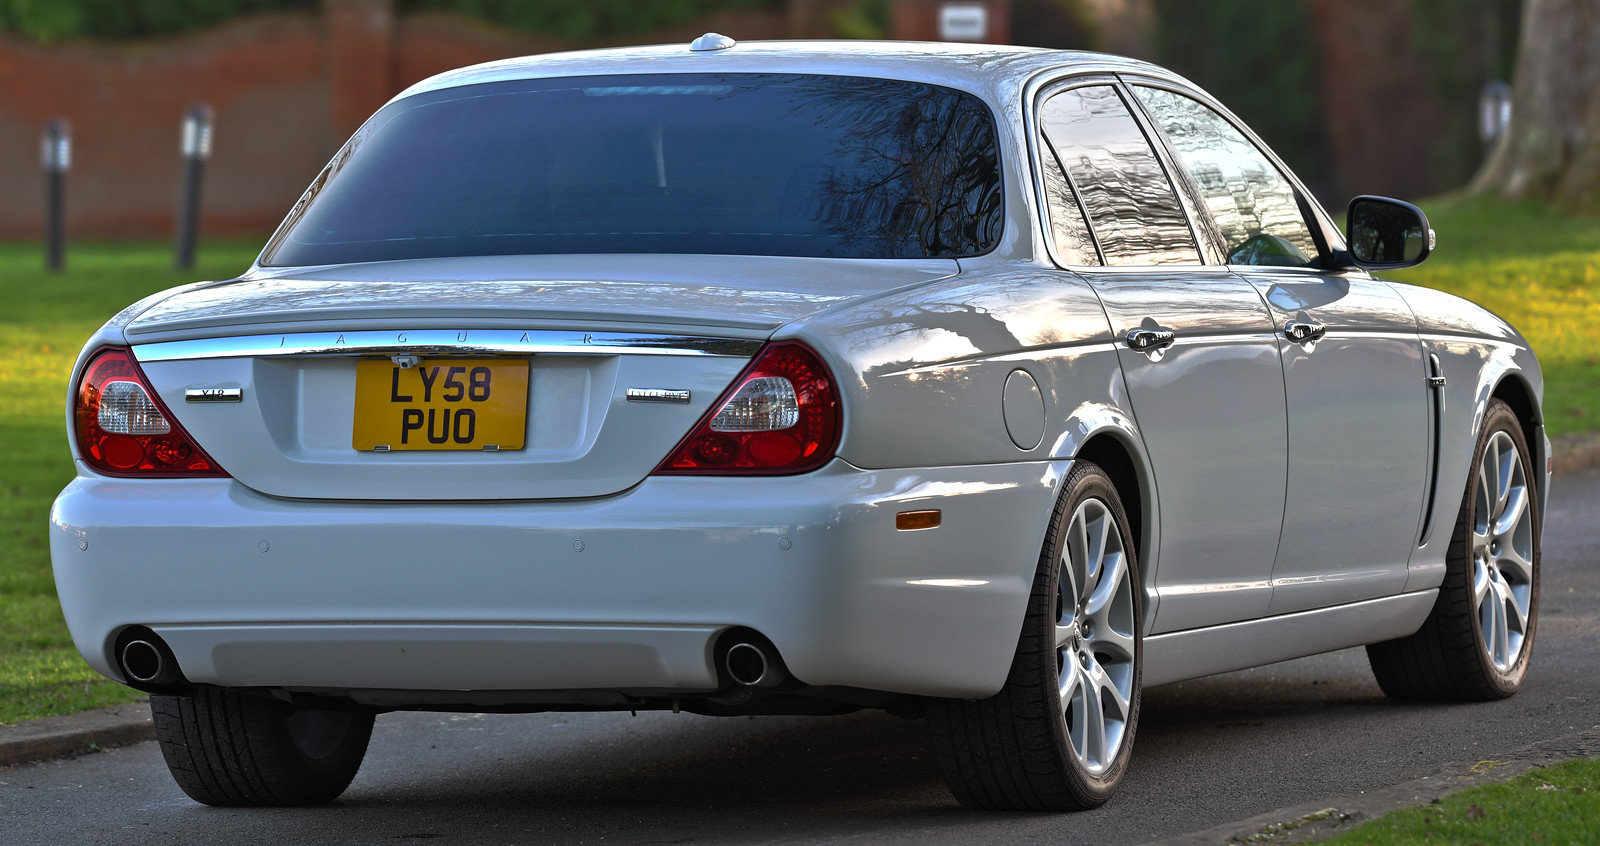 2008 Jaguar XJ8 Executive 4.2L SOLD (picture 2 of 6)